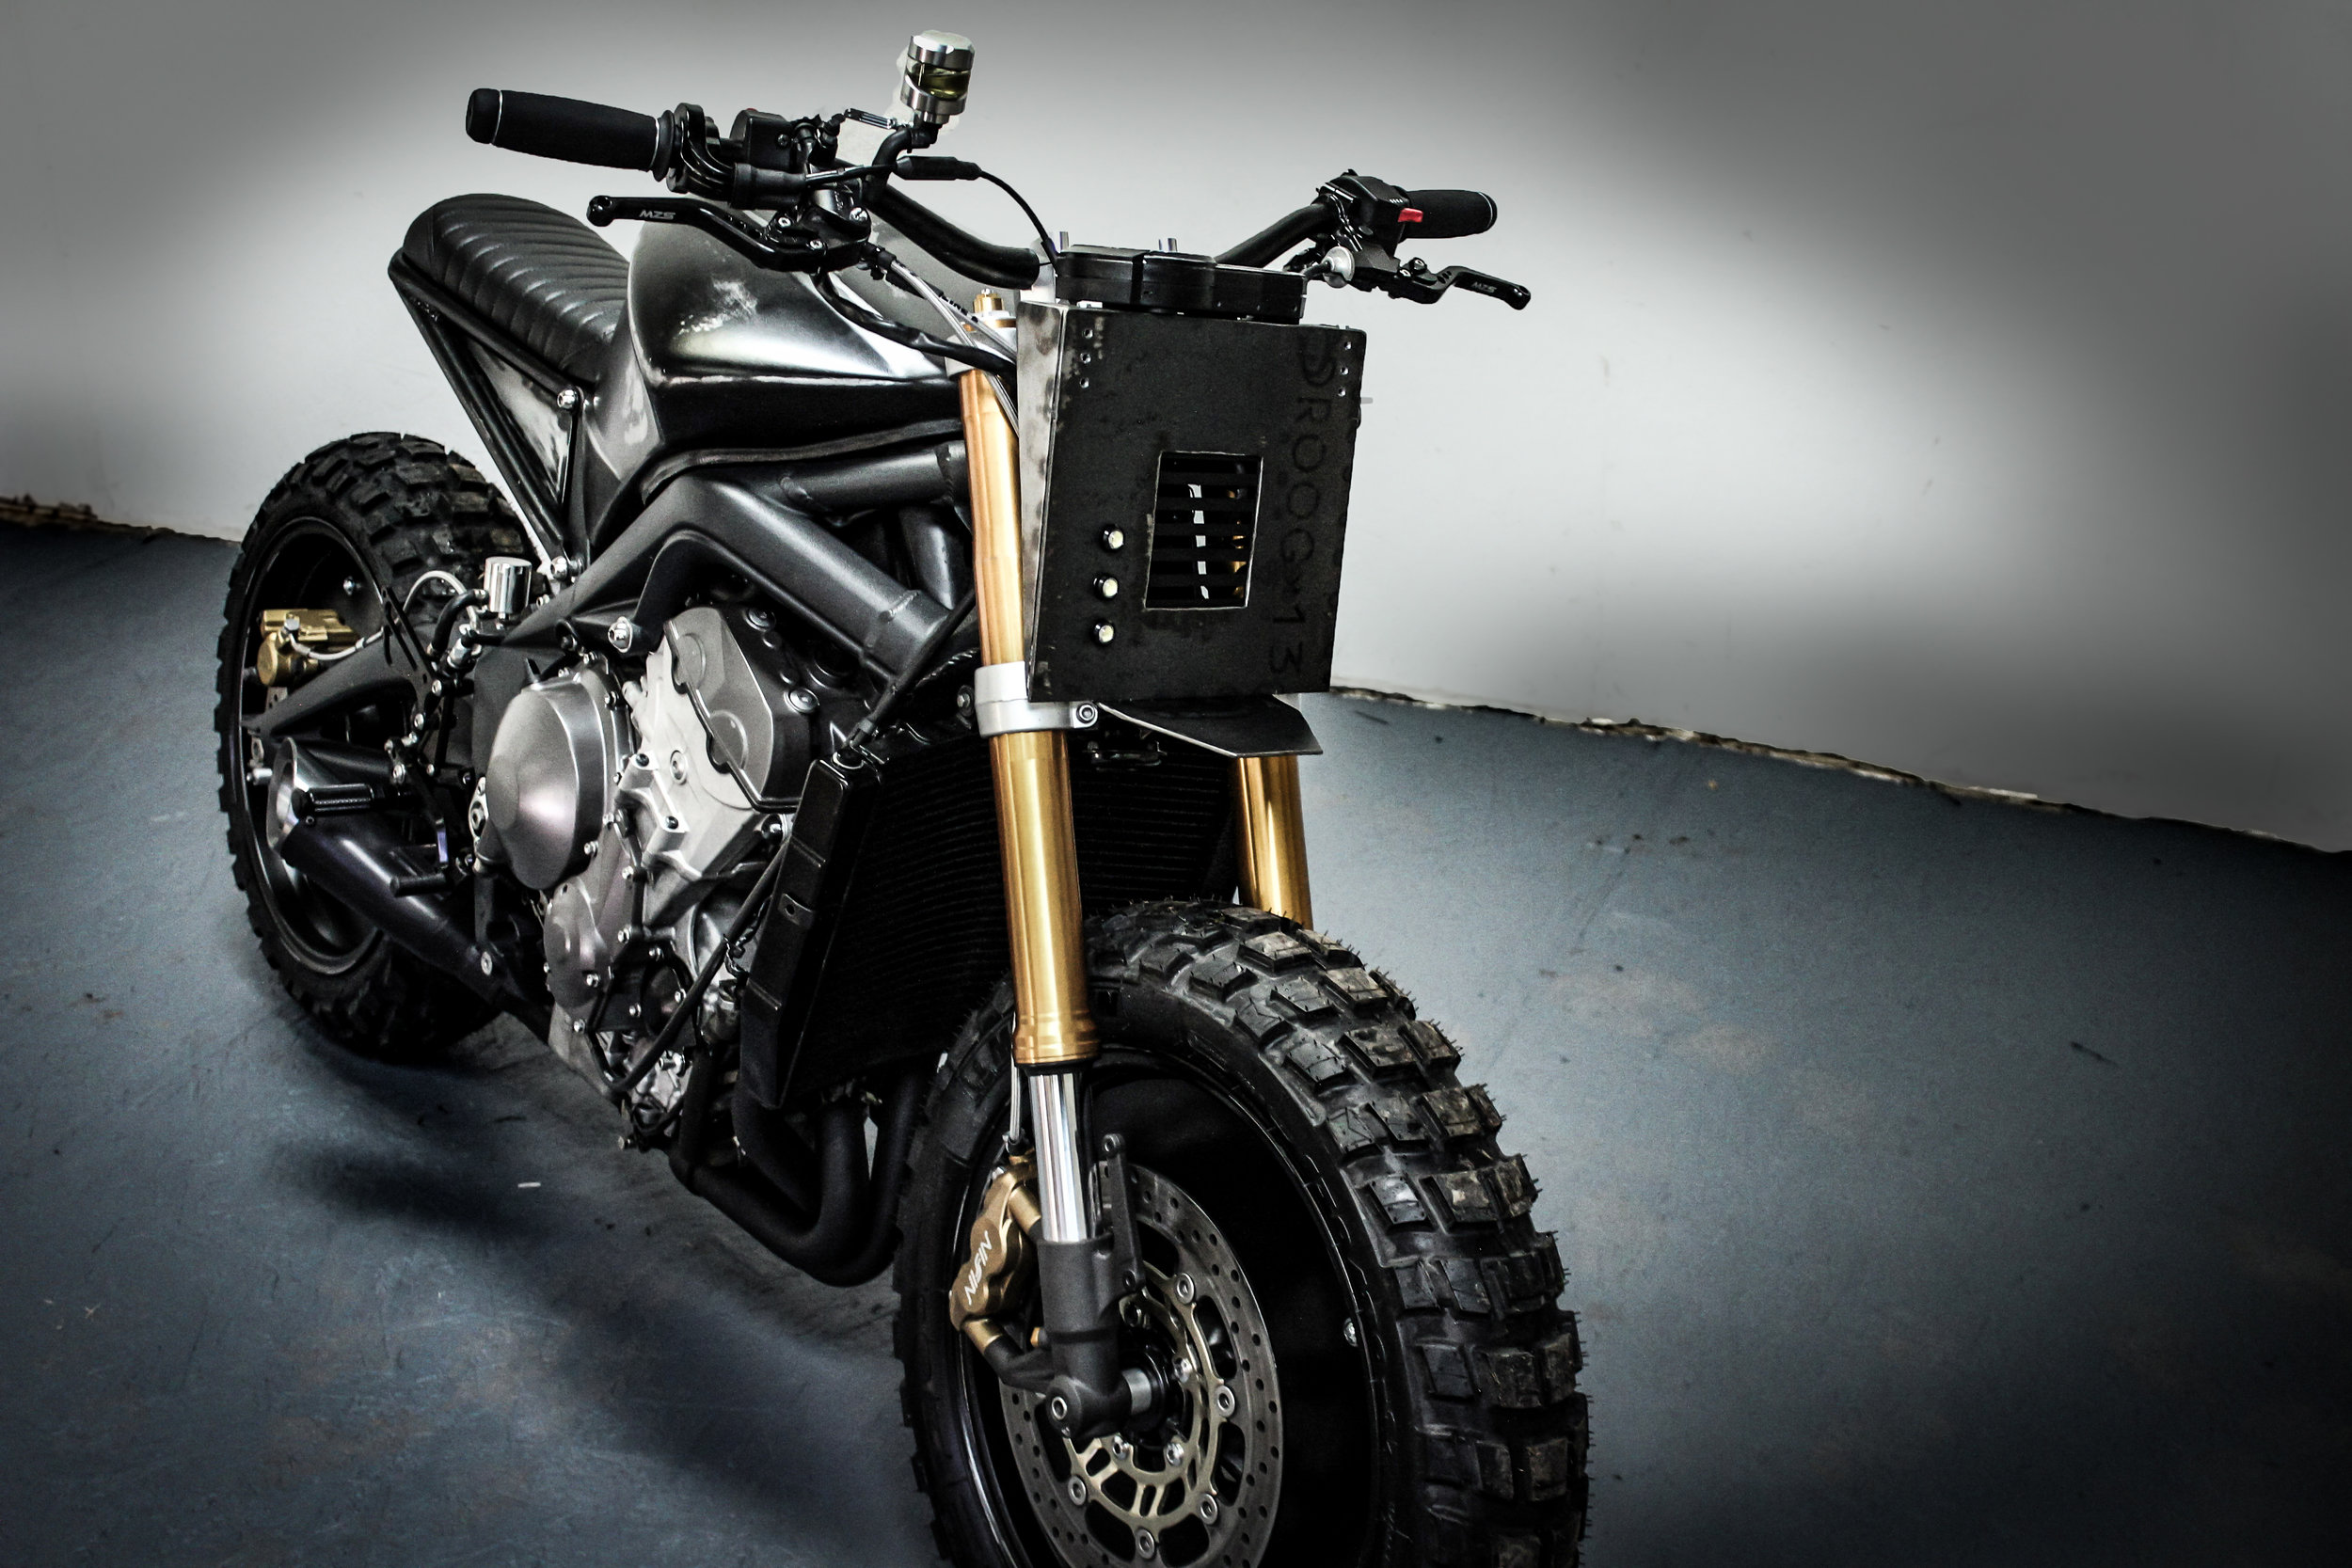 - // SUSPENSIONEquipped with high end suspension DM-013 is a machine built for a good time. With high speed and high adrenaline you need the suspension to tag along. Adjustable with a modern look your Urban Menace is ready for it all.